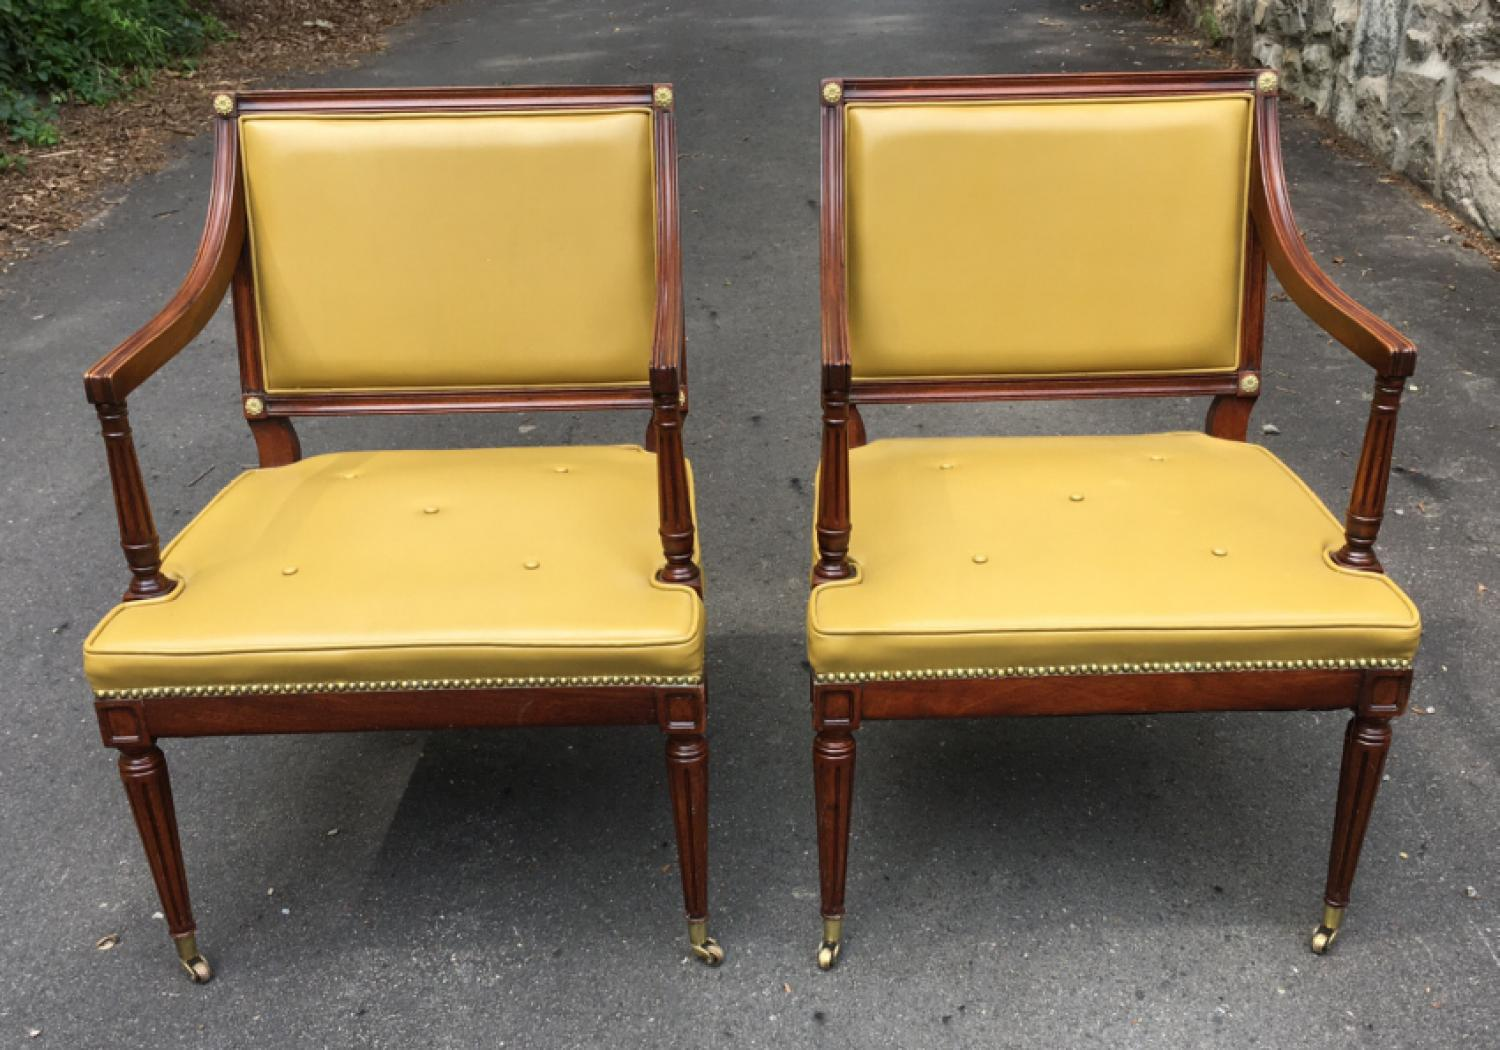 G Fox pair of arm chairs in Regency style